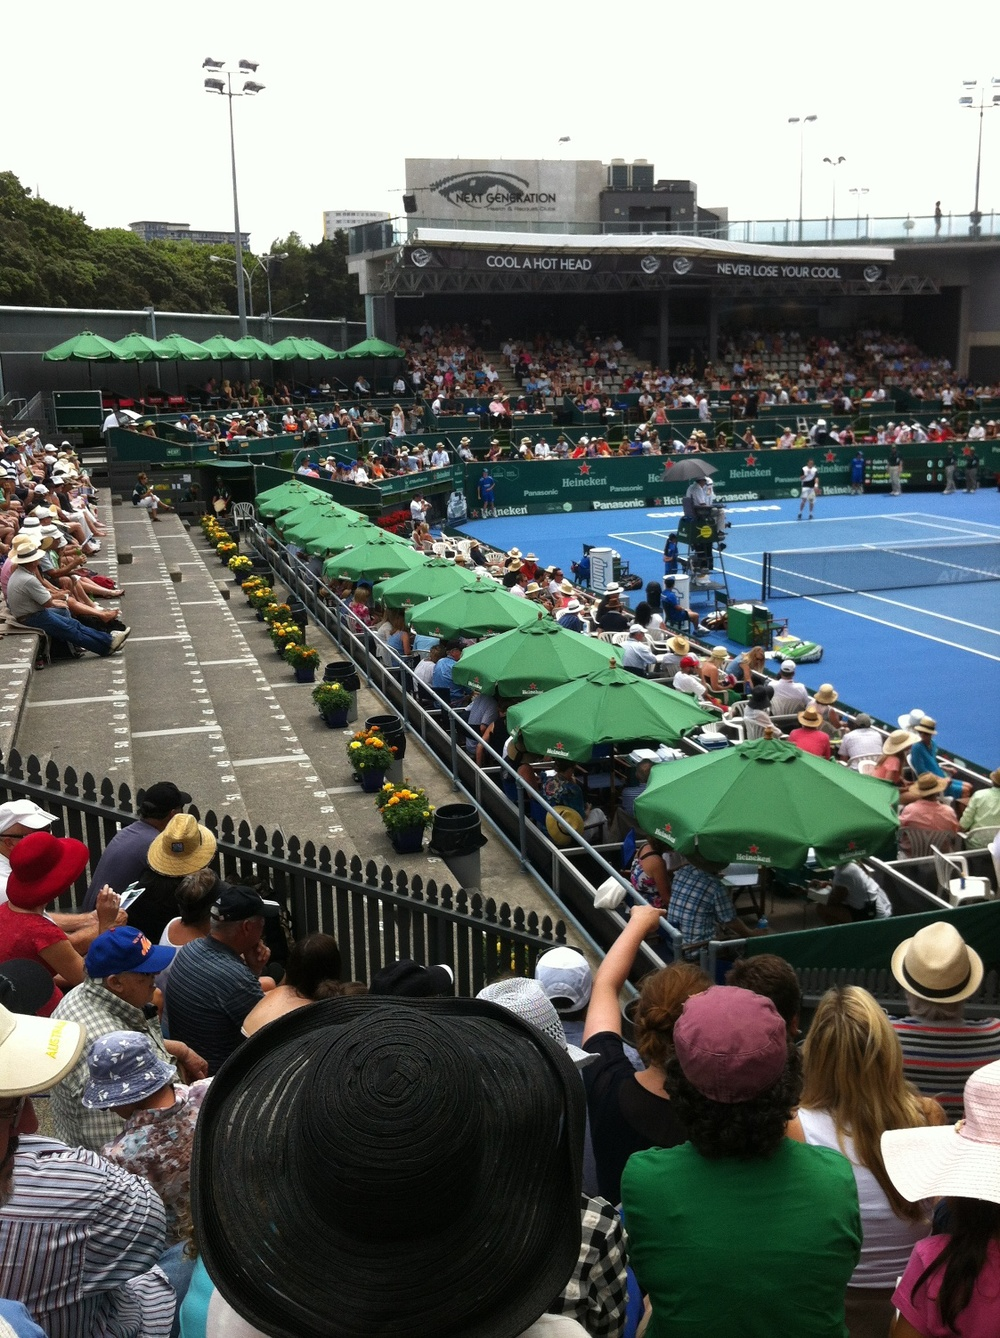 View from Yock Stand, Heineken Tennis Mens Final 2014